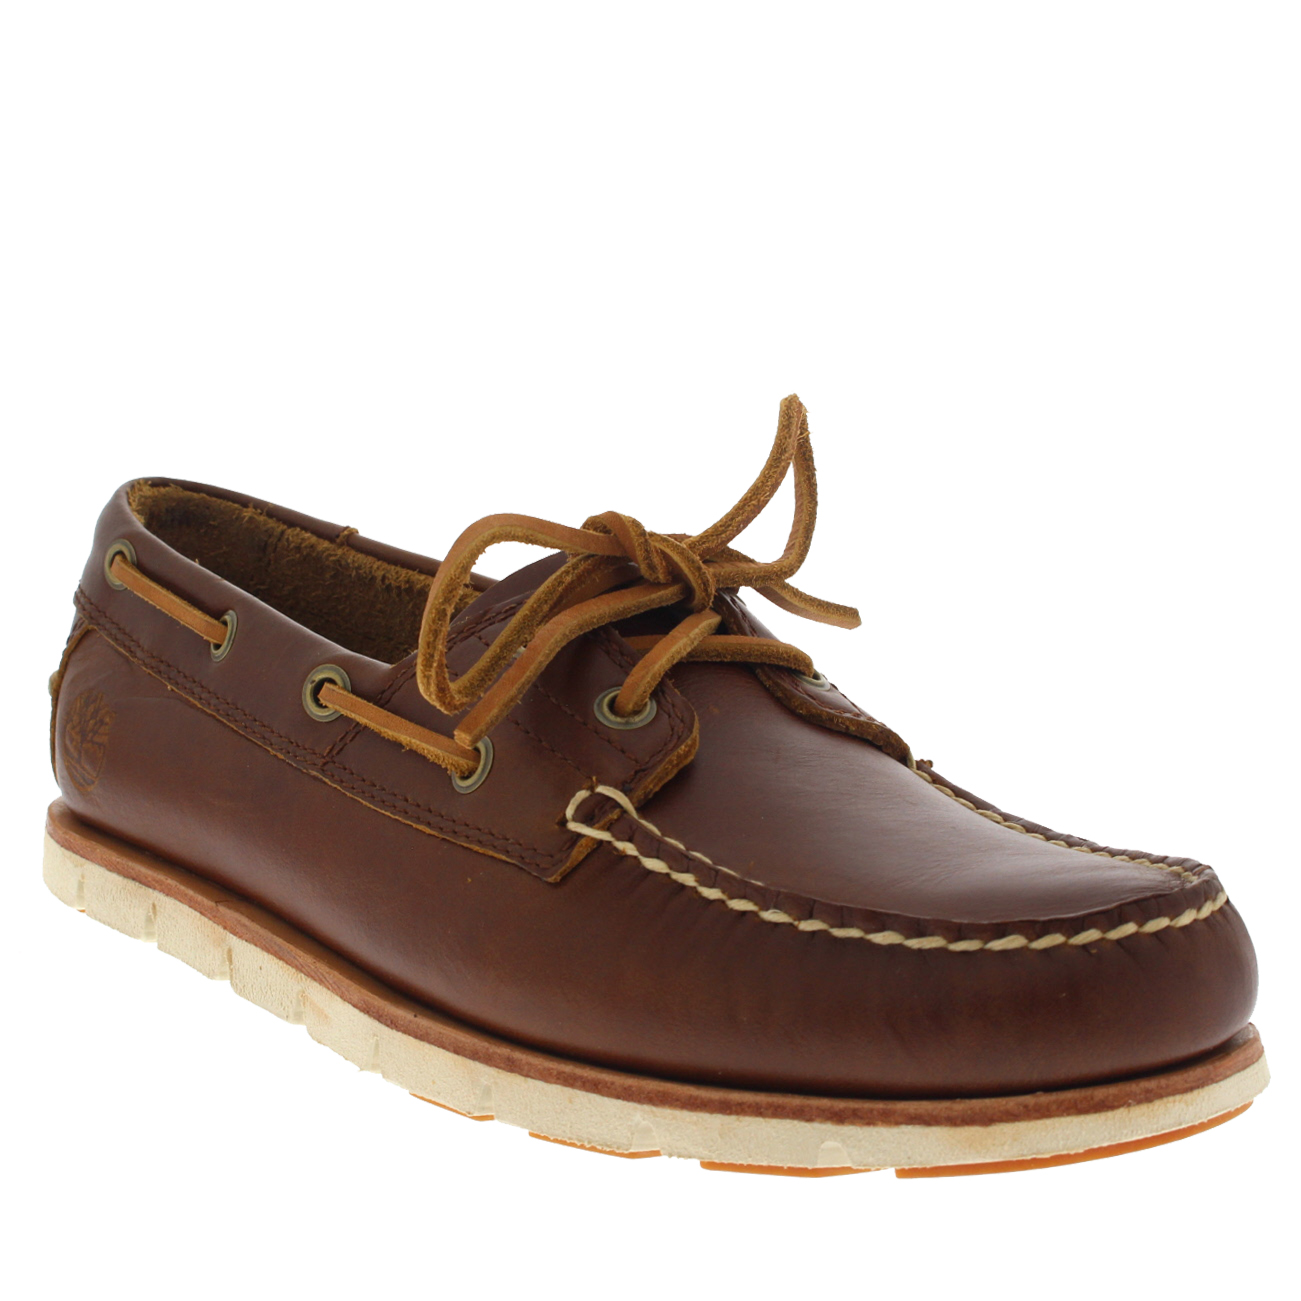 TIMBERLAND Tidelands Leather Loafers outlet low price fee shipping outlet release dates rwBjwsSk